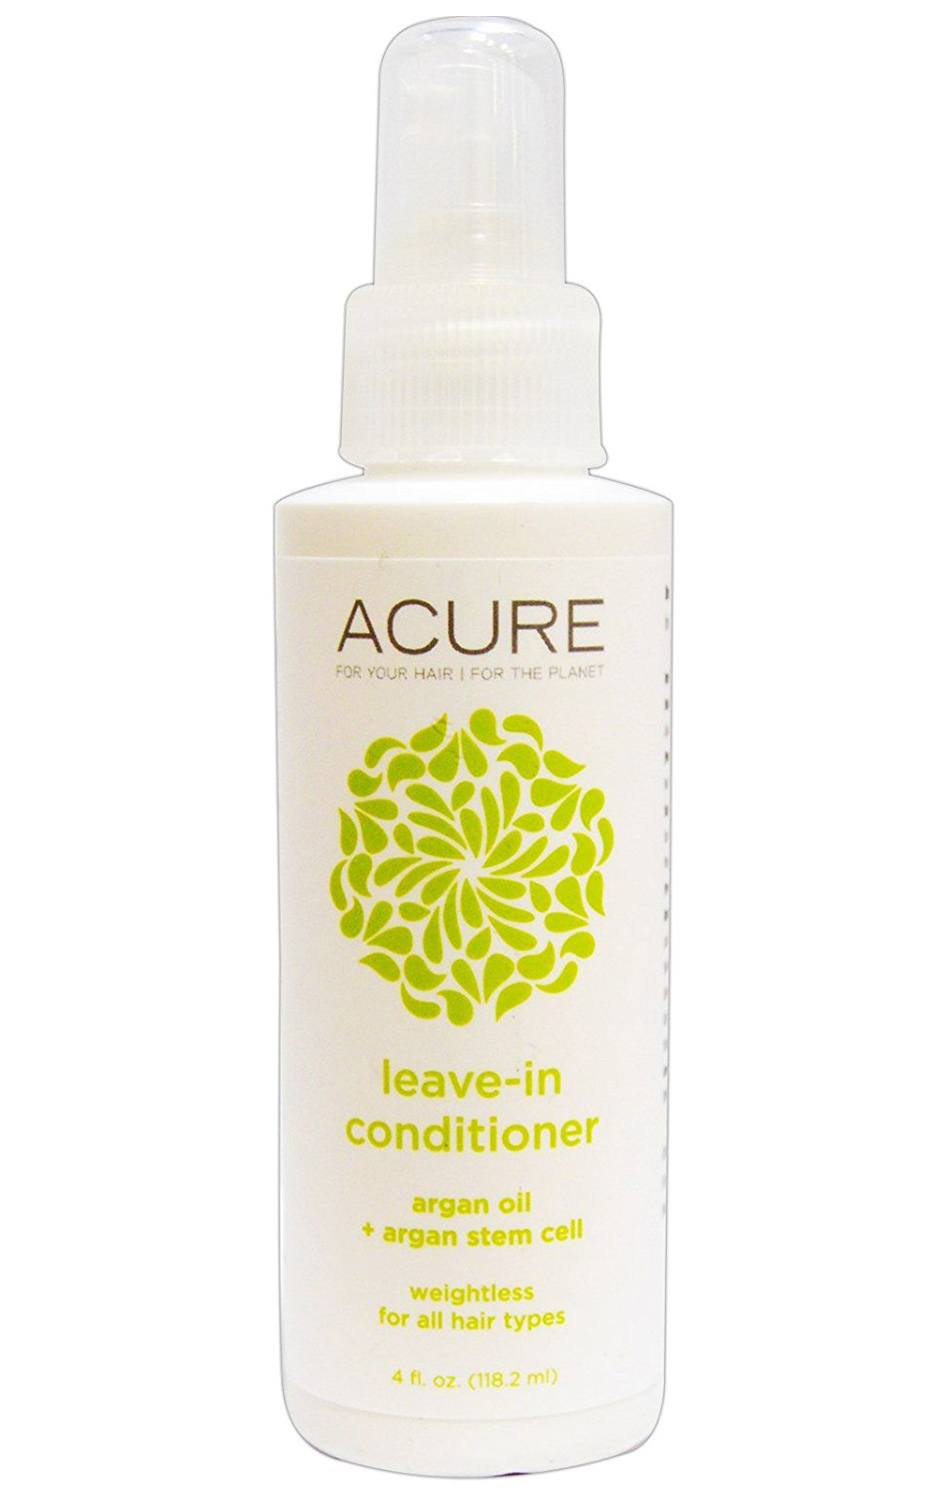 Acure Organics Leave-In Conditioner